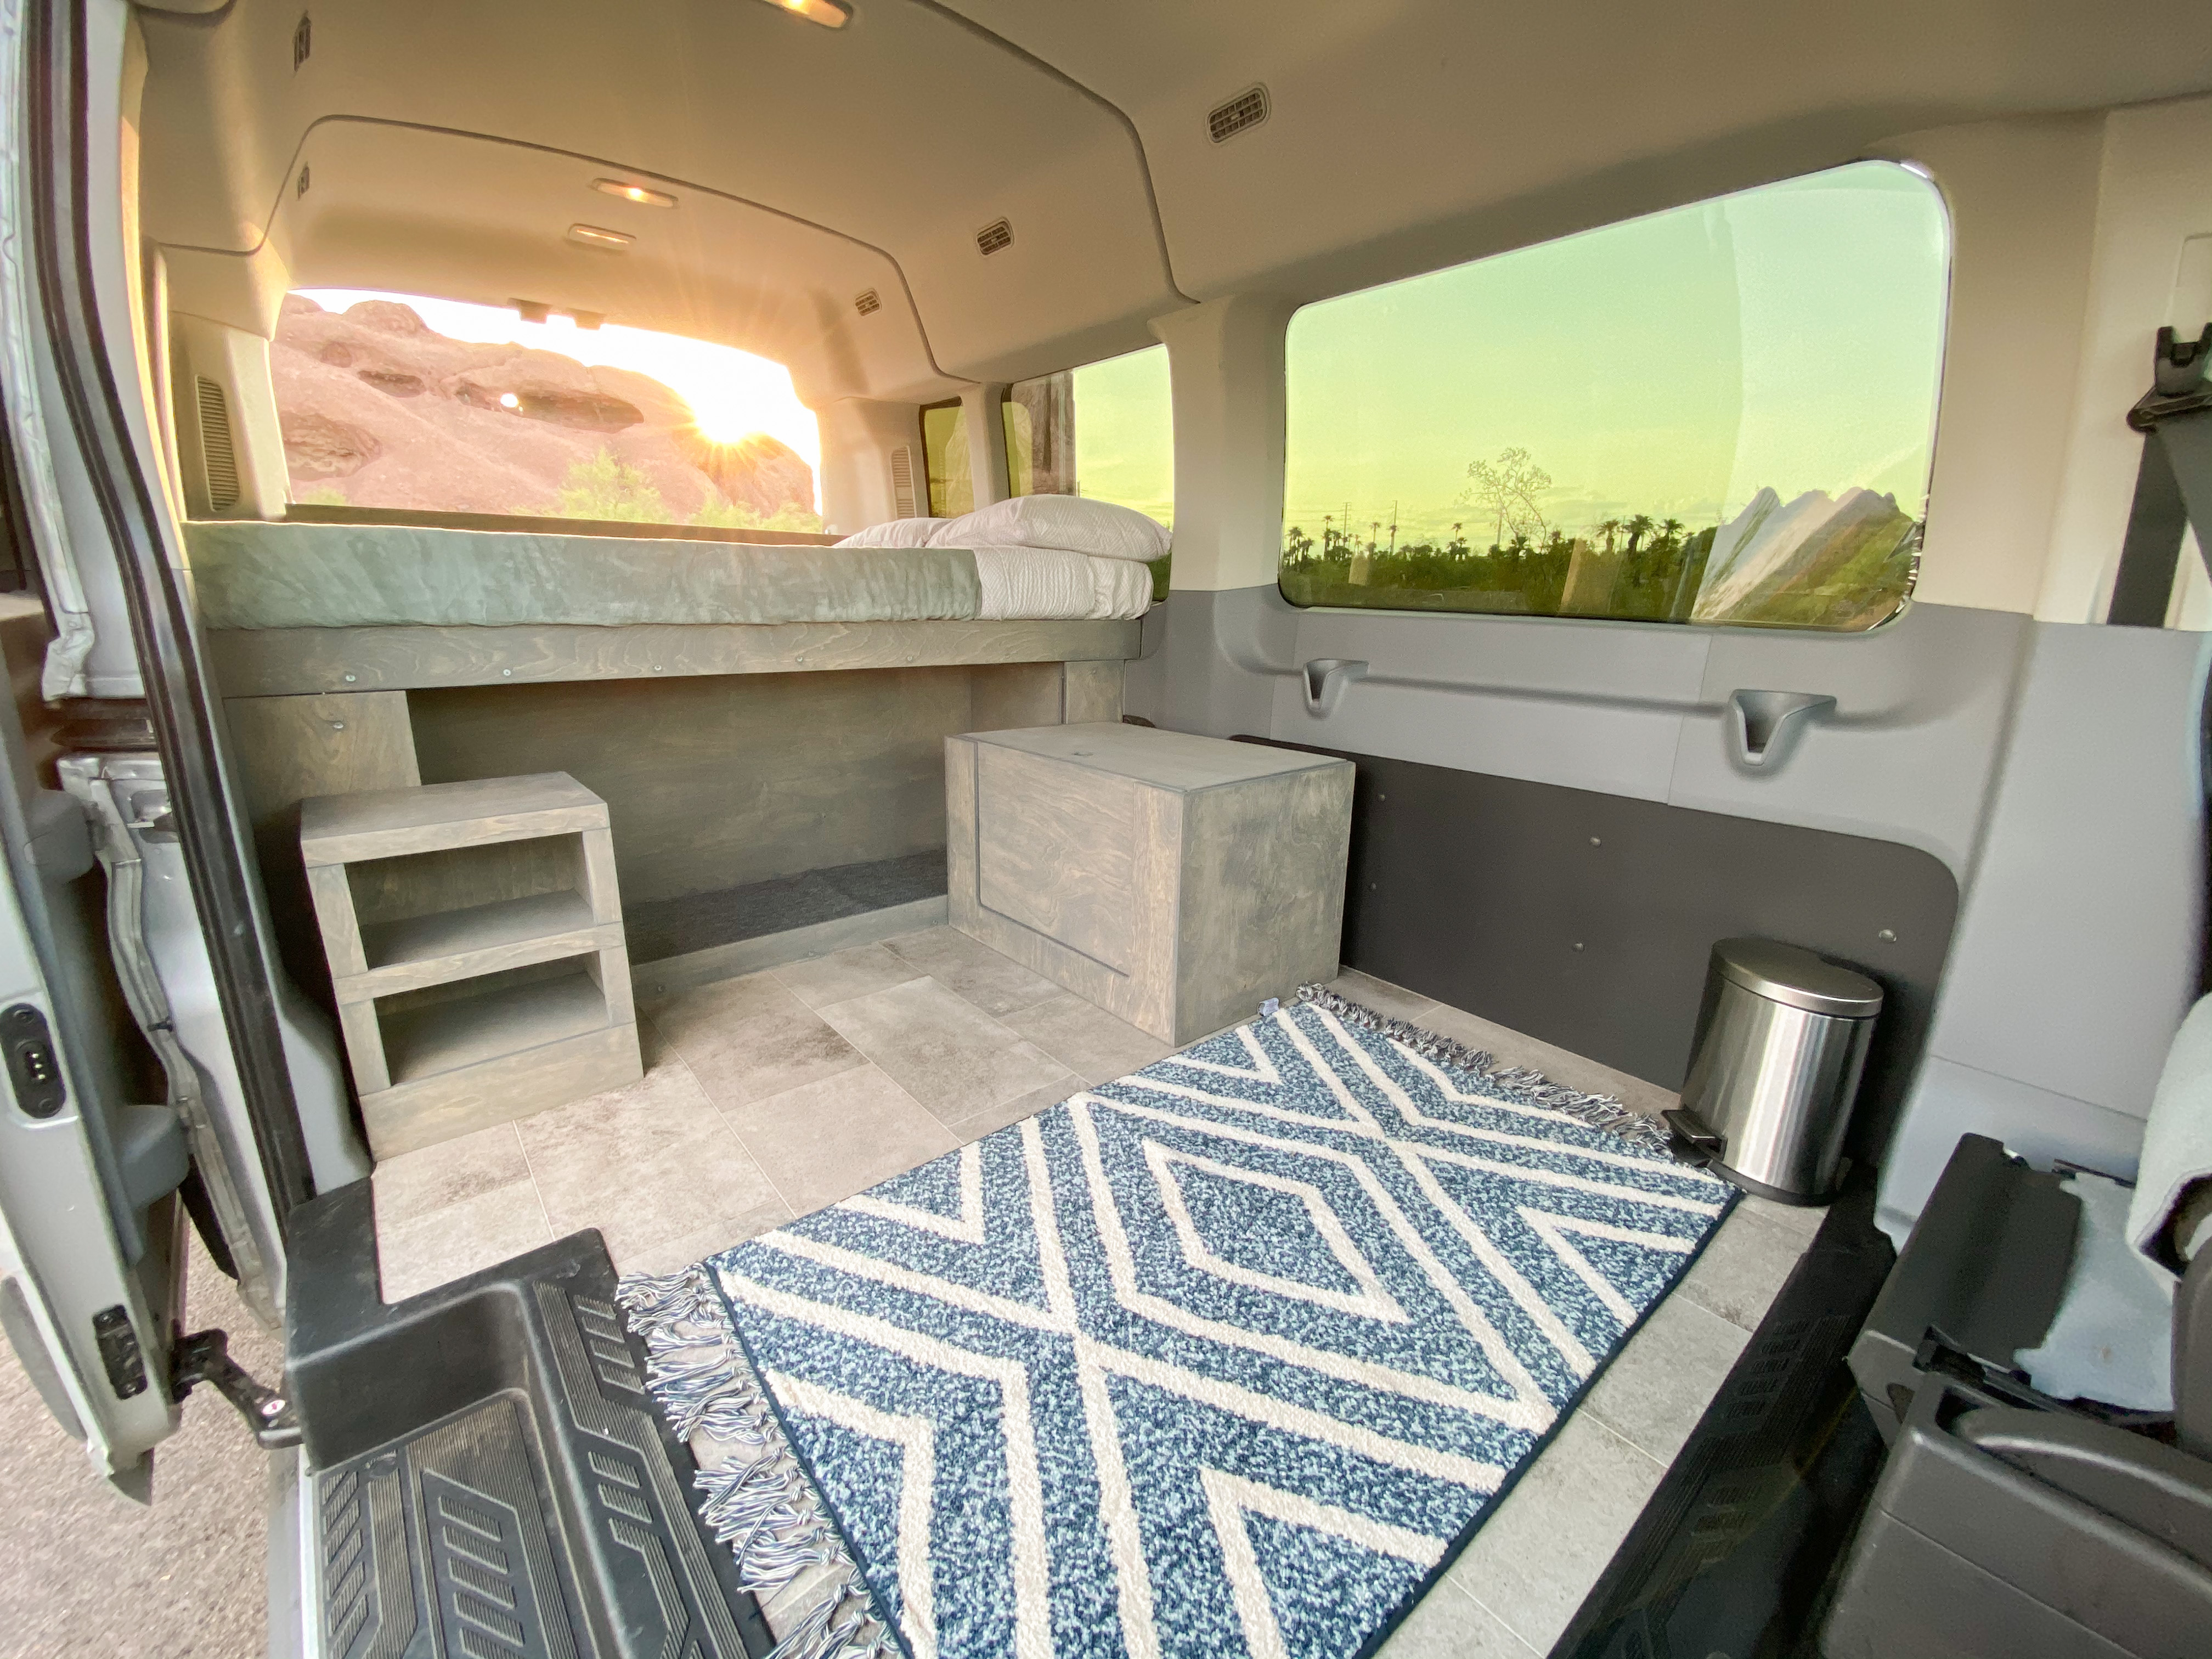 Lots of interior space! Optional 3 person bench seat can be installed behind the two front seats to accommodate up to 5 people. . Ford Transit Camper Van 2017